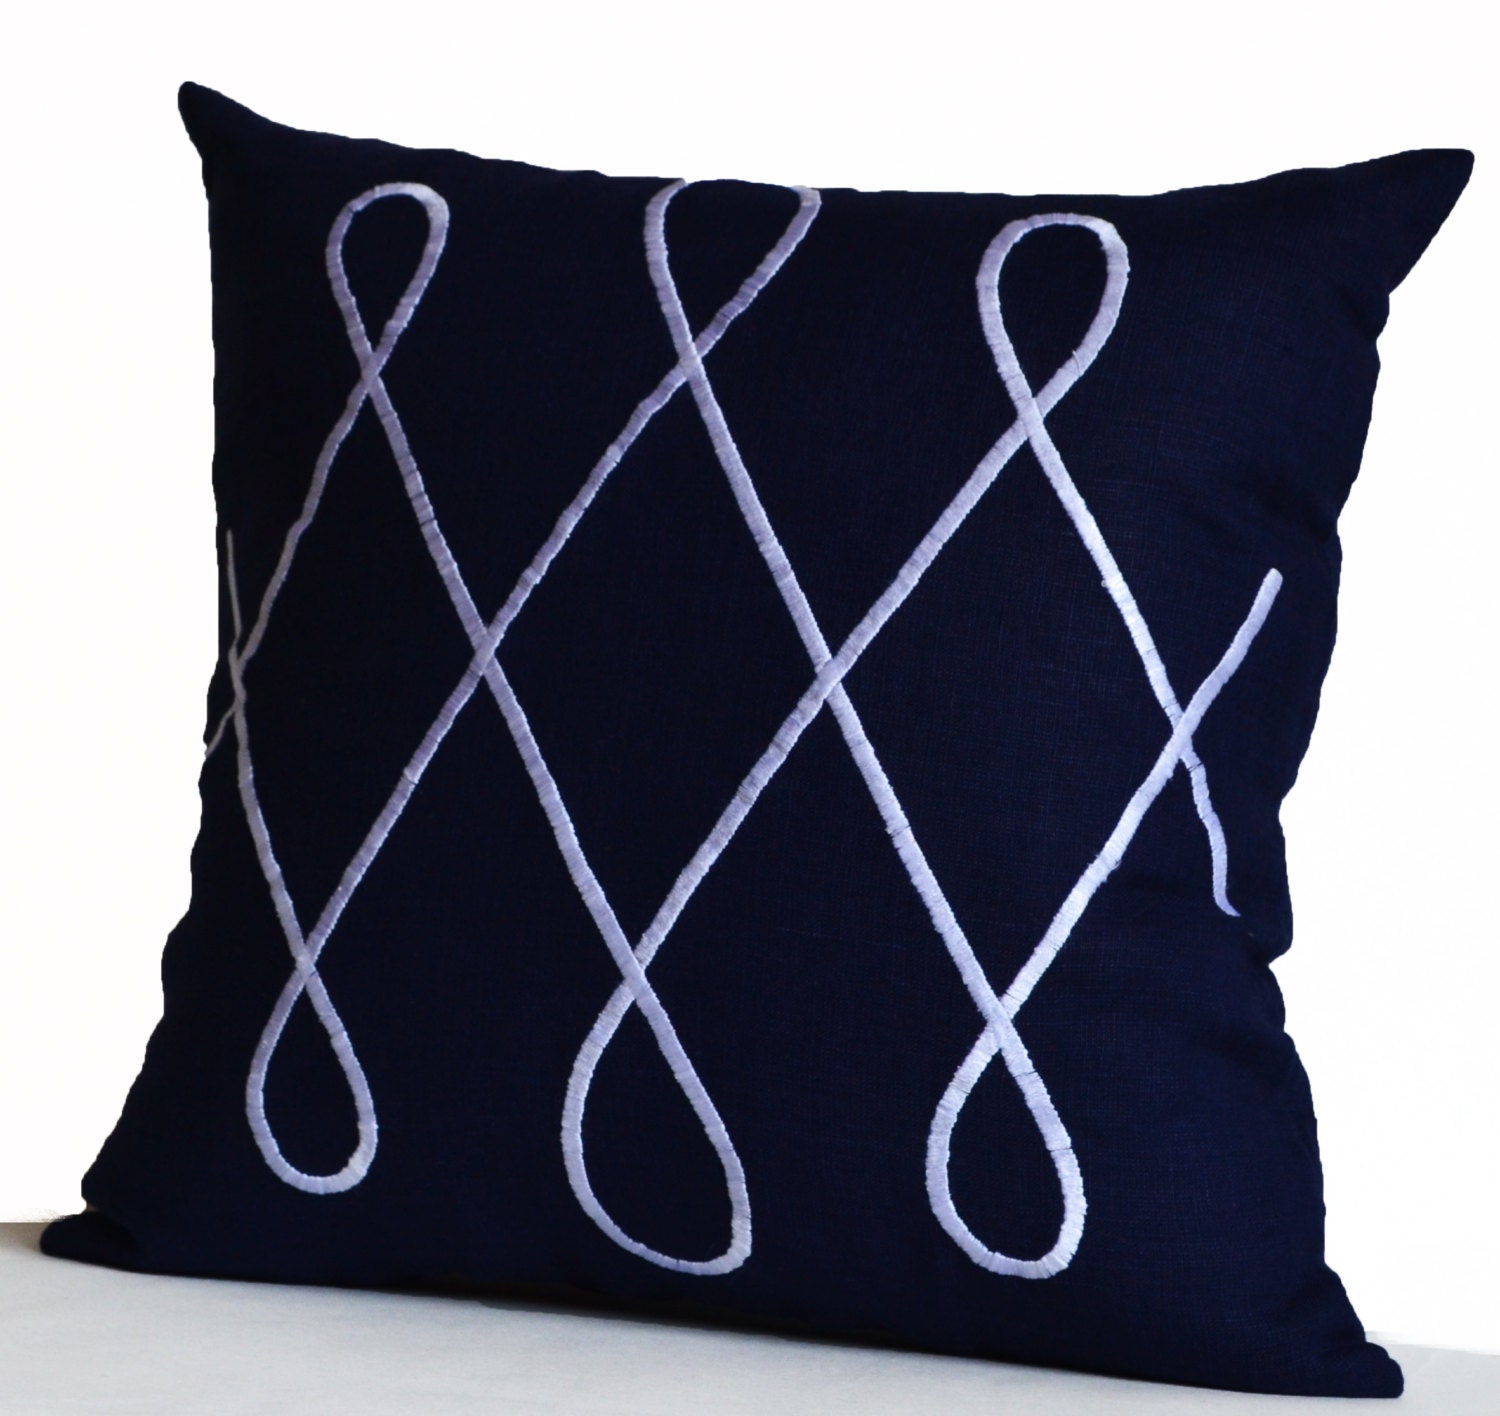 Blue Throw Pillow Cover Navy Linen Geometric Decorative